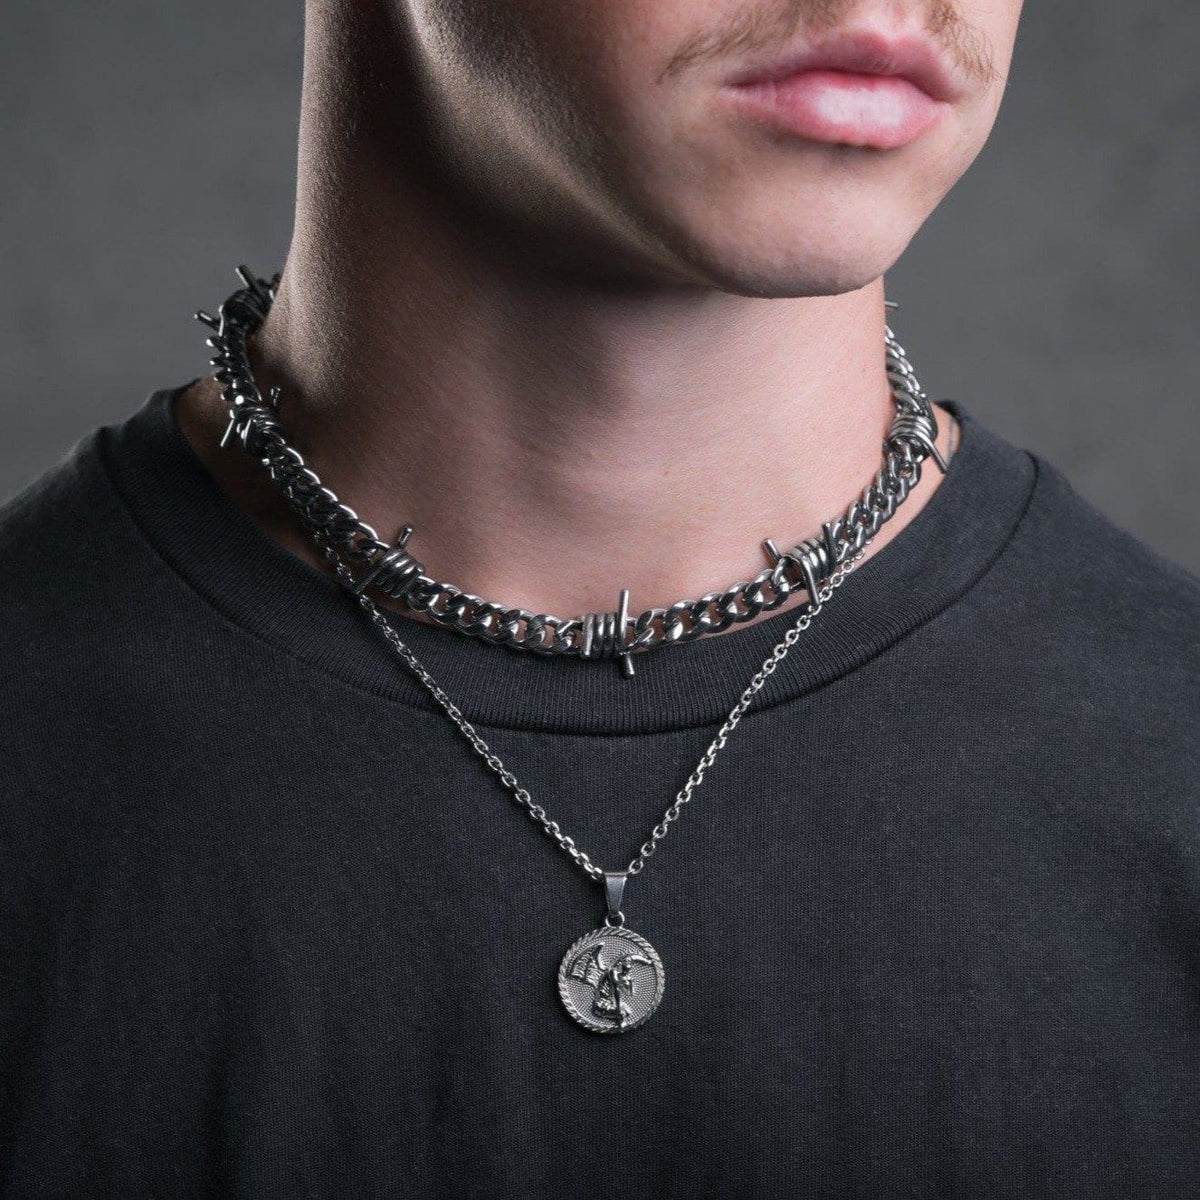 Fallen Angel Medallion Pendant Mens Necklace by Statement_05